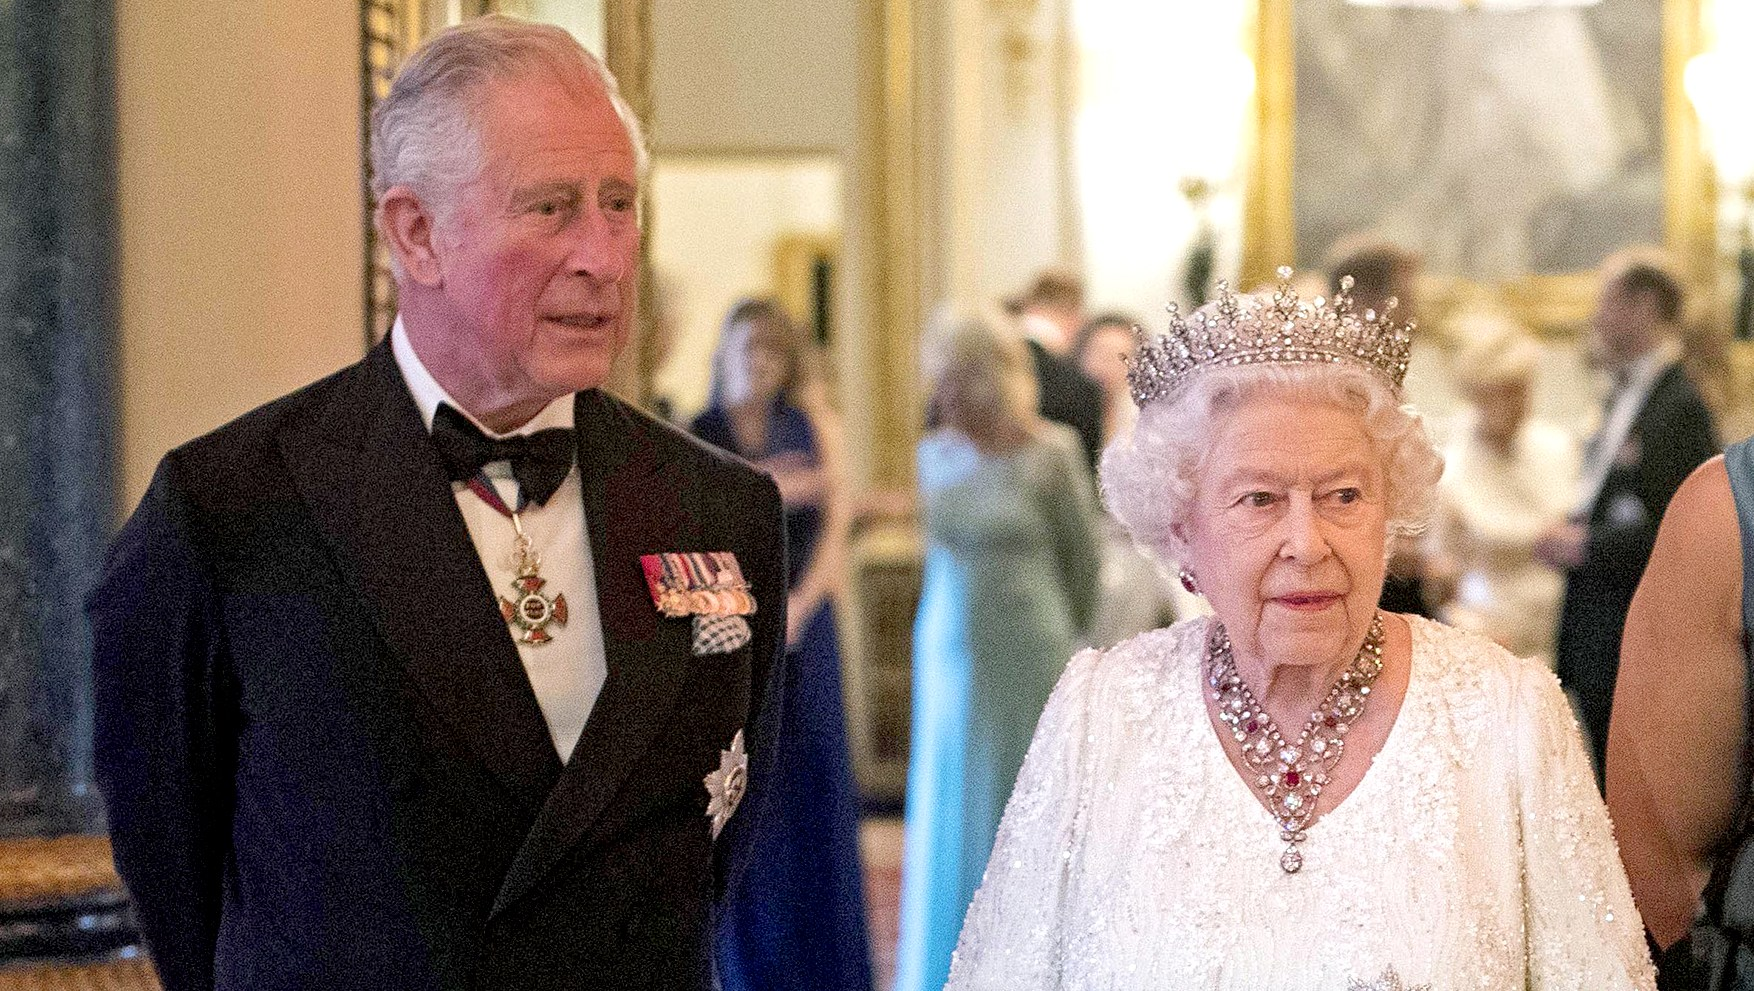 Prince-Charles-to-succeed-the-Queen